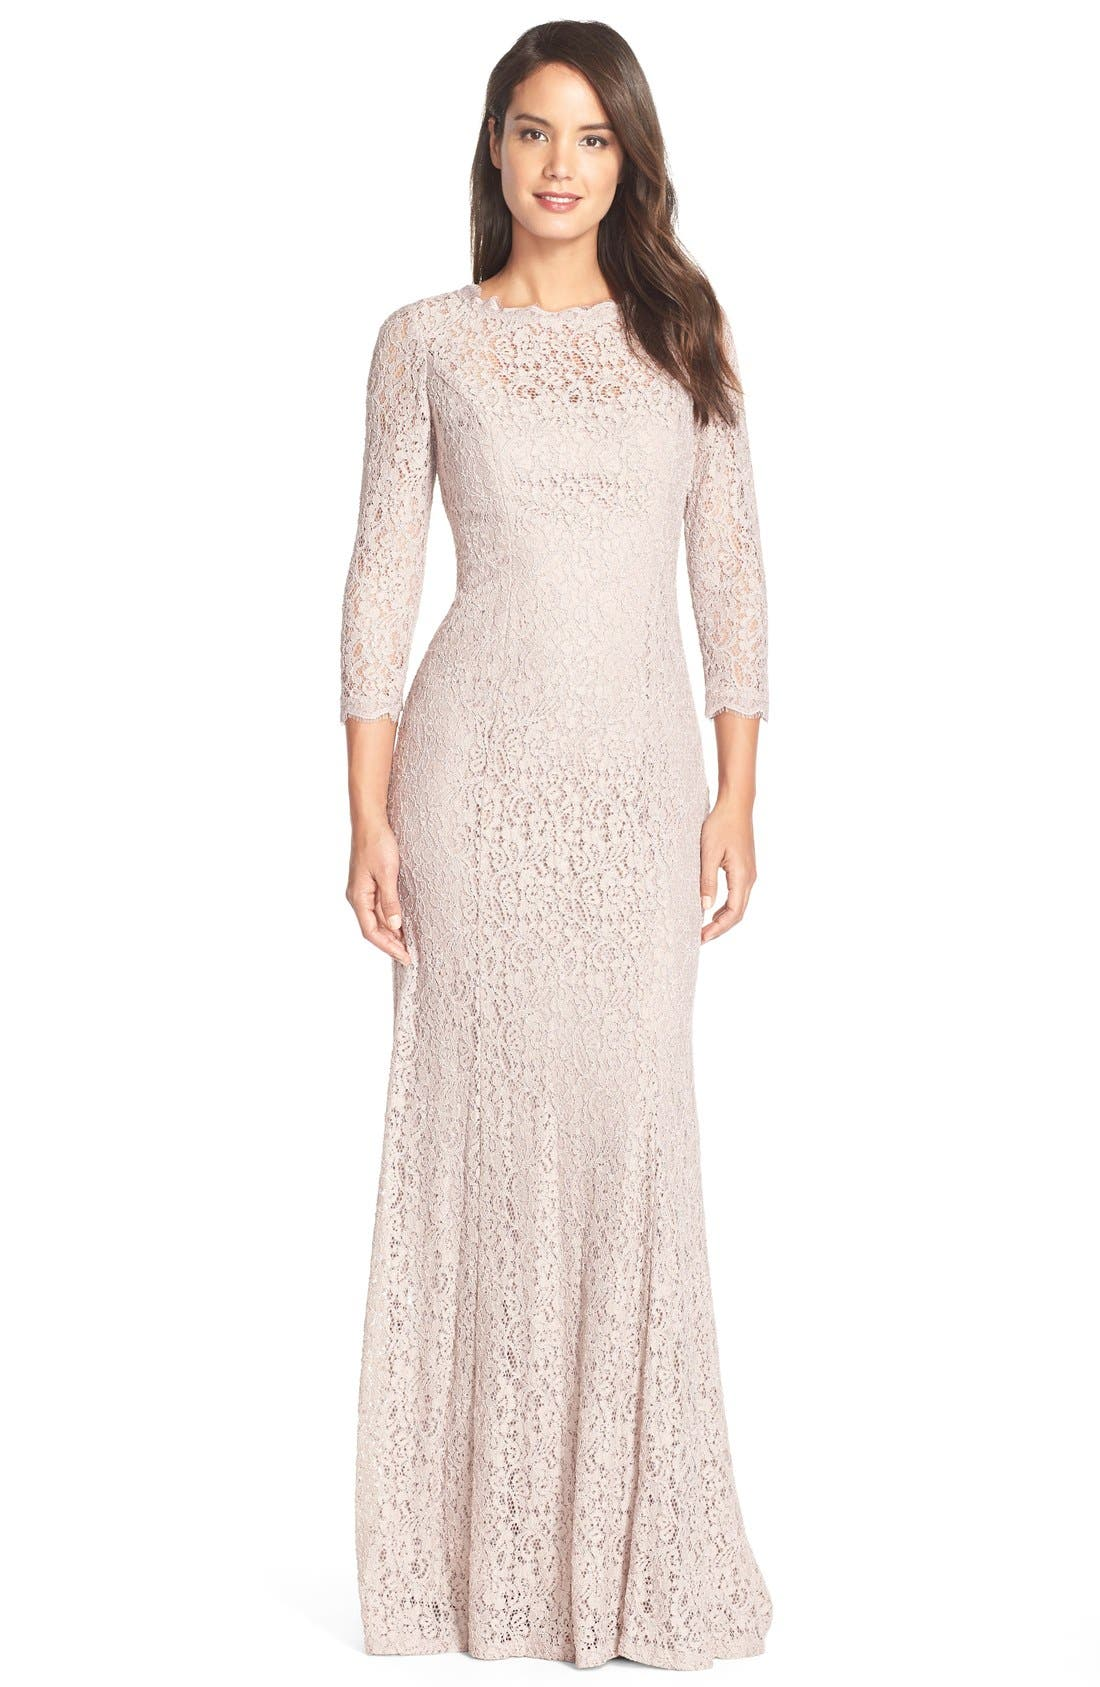 Alternate Image 1 Selected - Adrianna Papell Illusion Sleeve Lace Mermaid Gown (Regular & Petite)